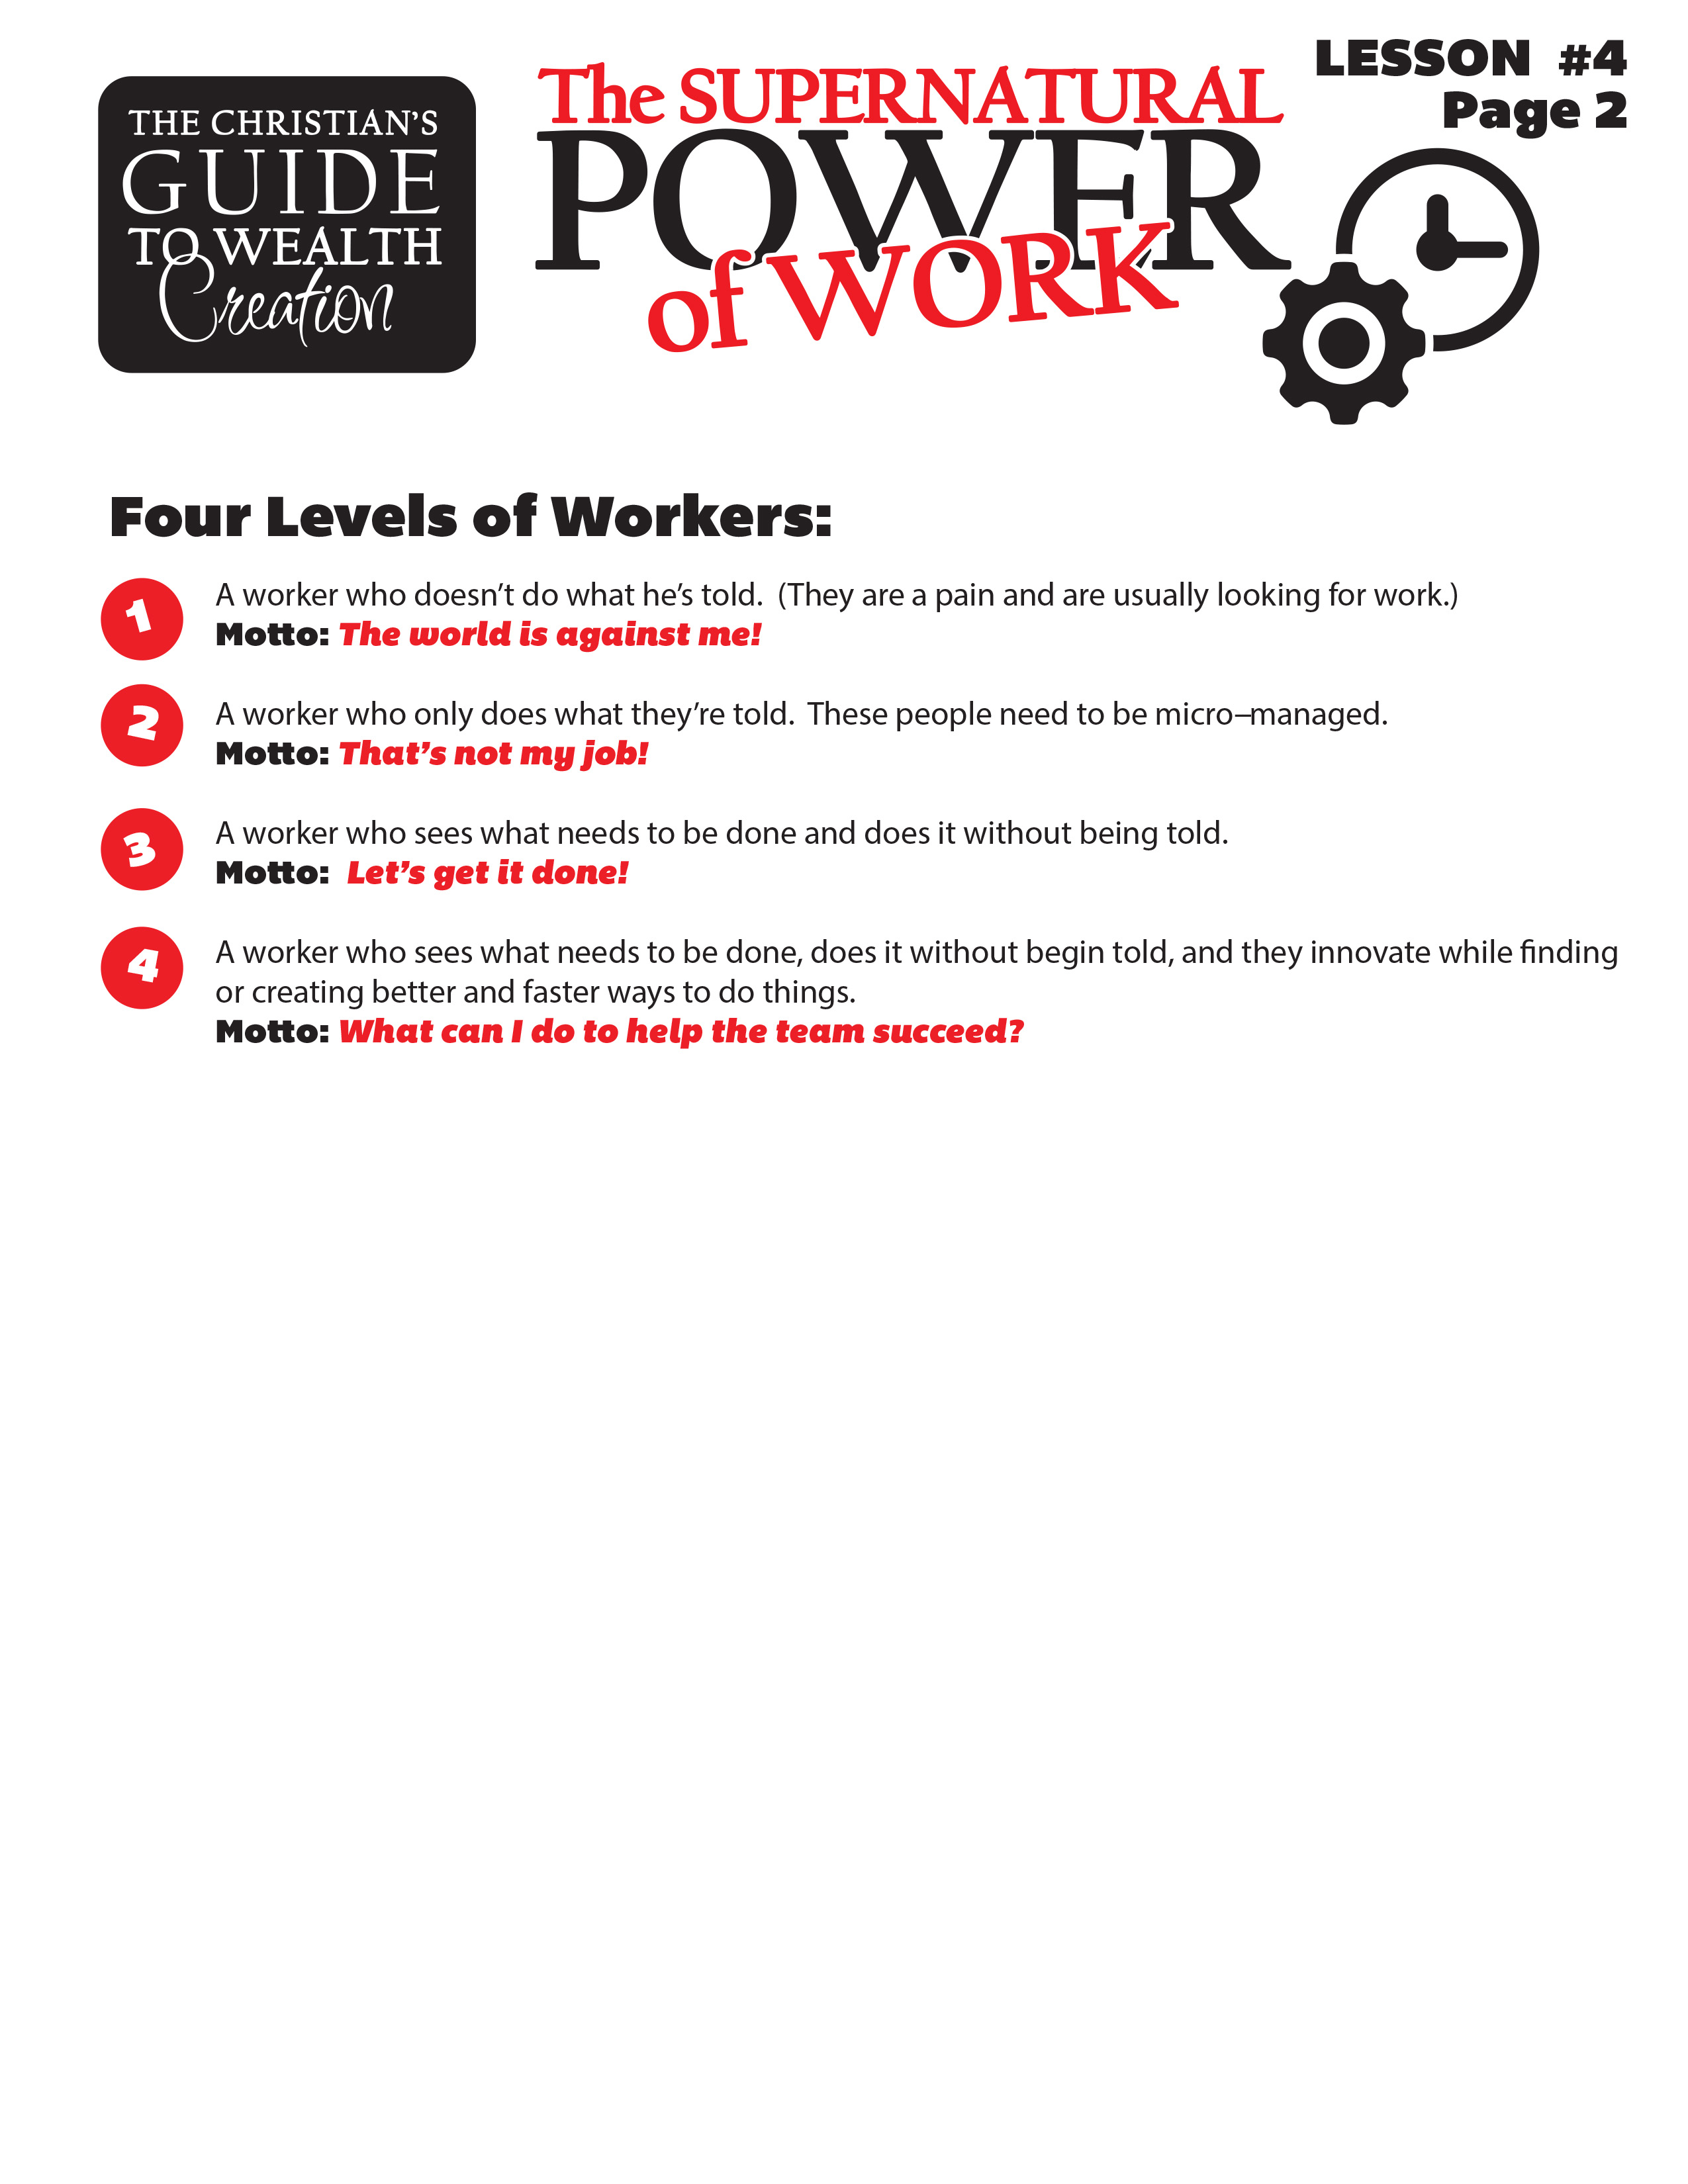 Lesson 4 The Supernatural Power of Work page 2.jpg